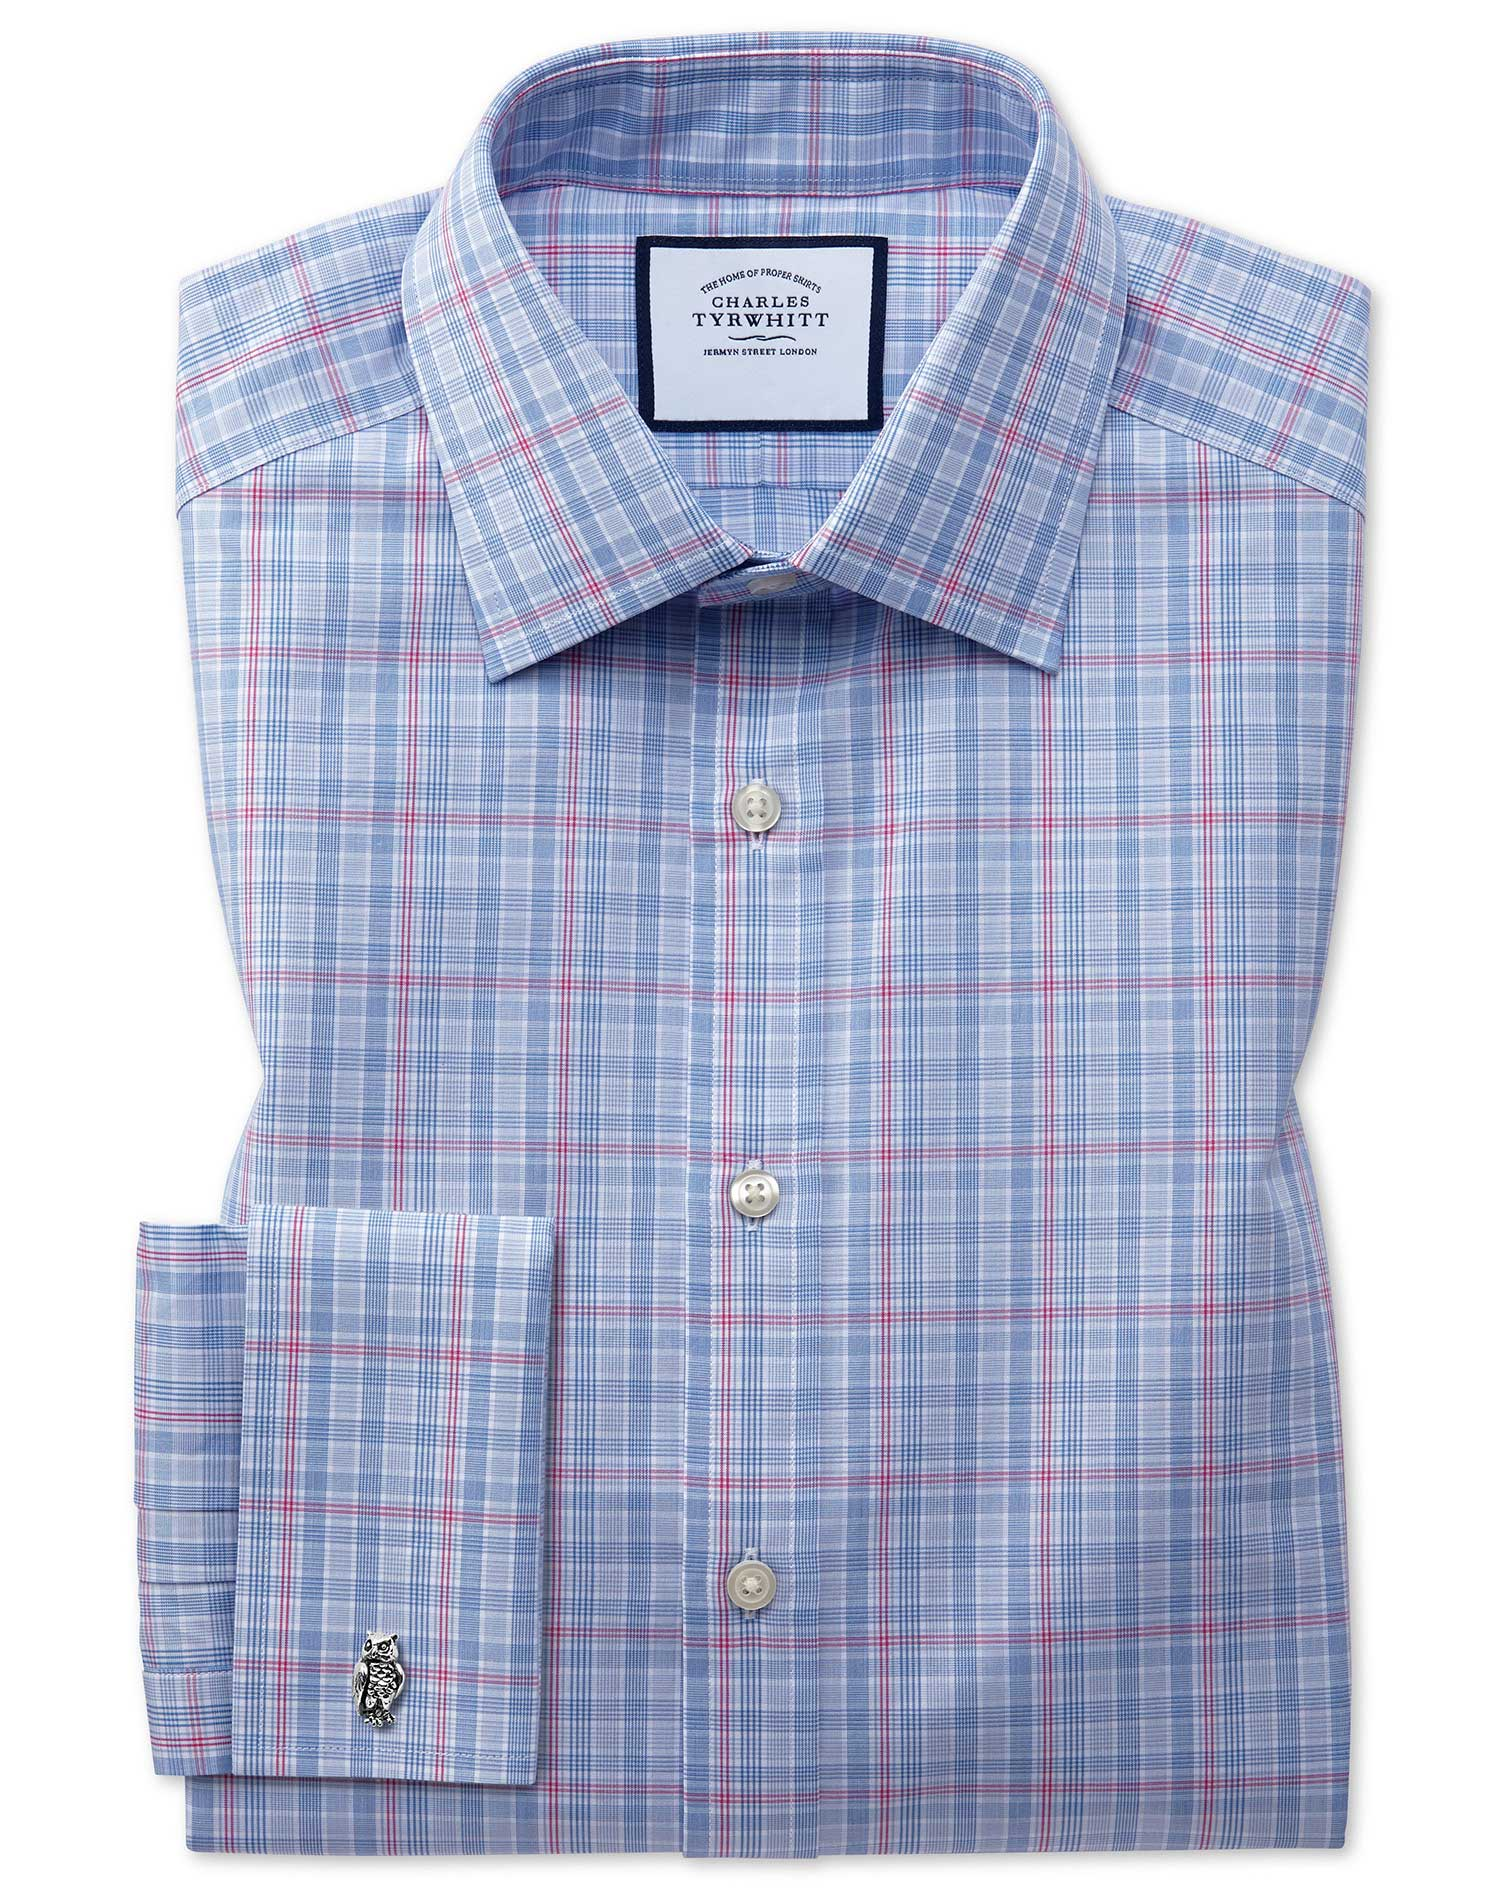 Classic Fit Blue and Pink Prince Of Wales Check Cotton Formal Shirt Double Cuff Size 17/36 by Charle